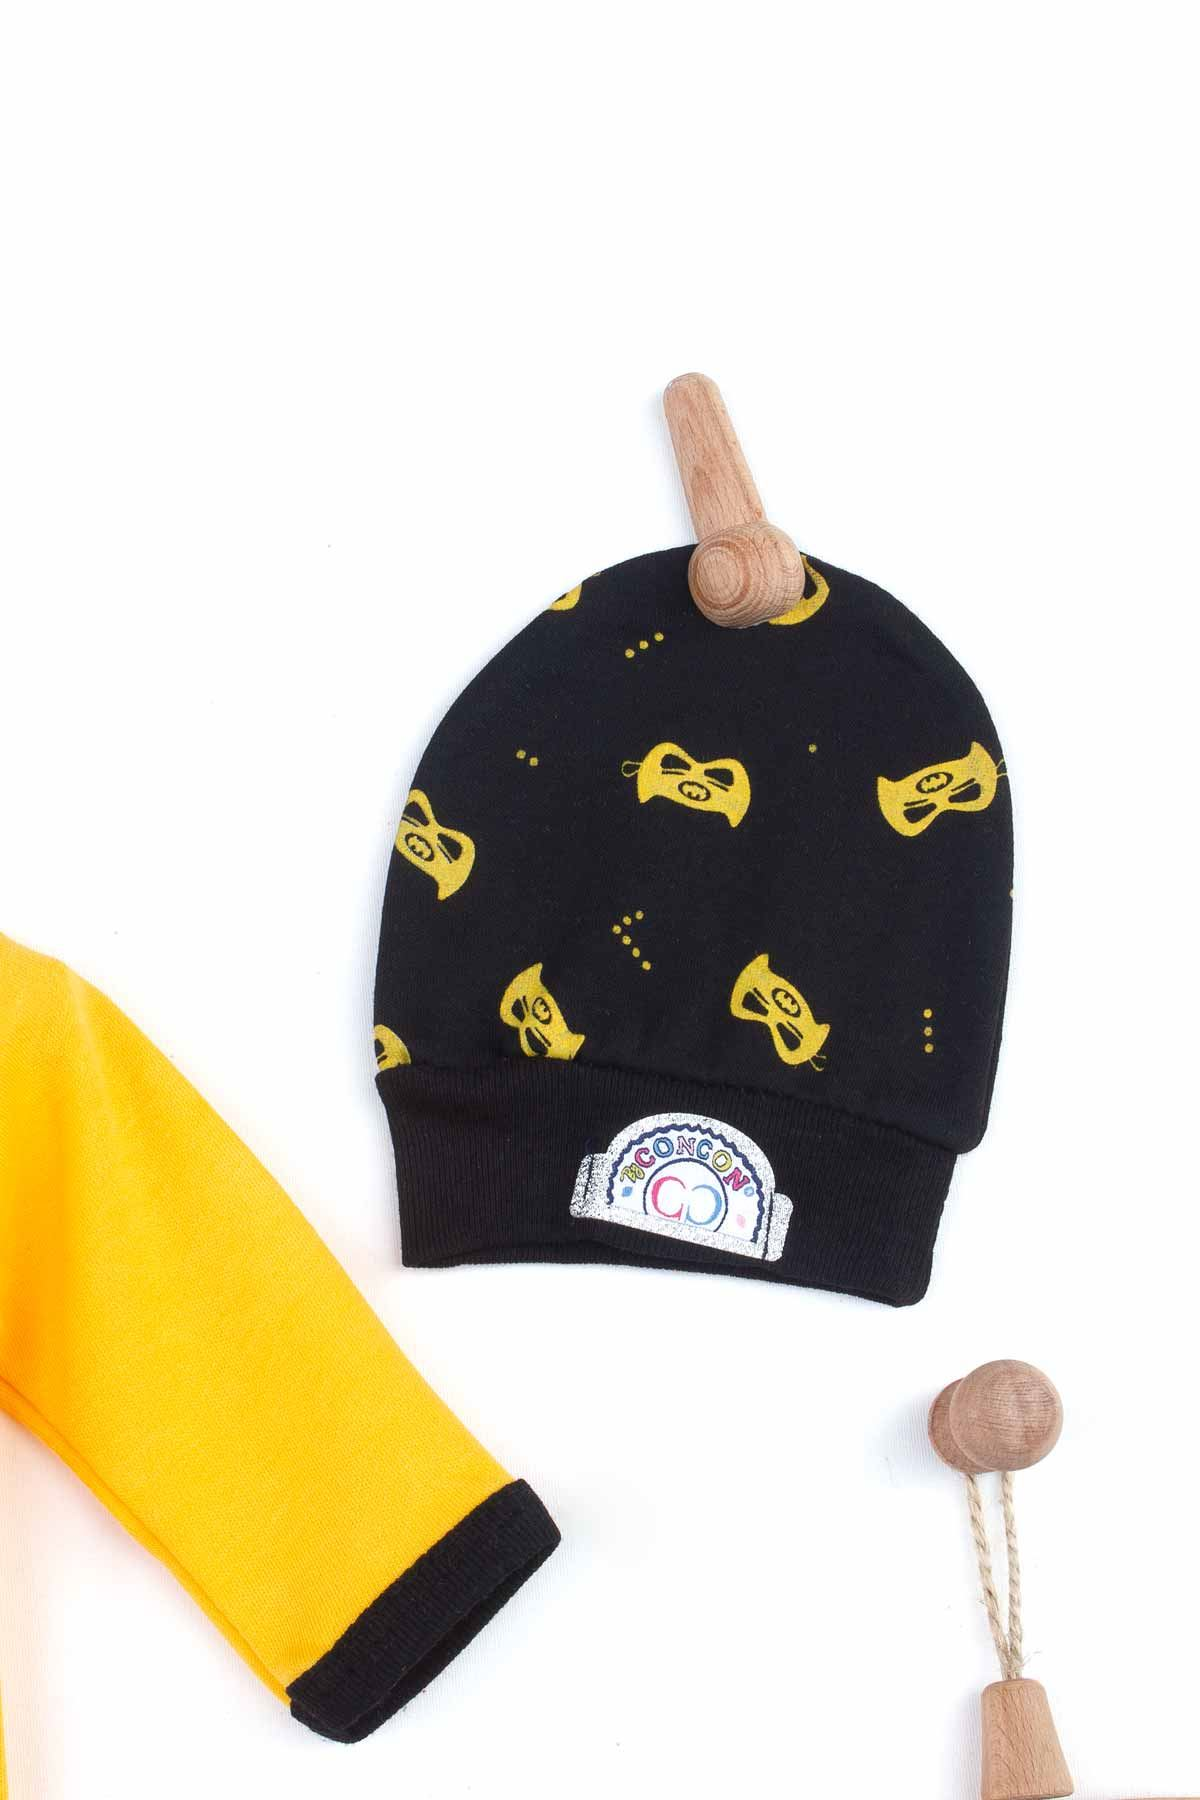 Girls Baby Boy Newborn Clothing 5-Piece set Cotton Fabric Batman Boys Babies Summer Clothes Gift Daily Casual Stylish outfit Mod